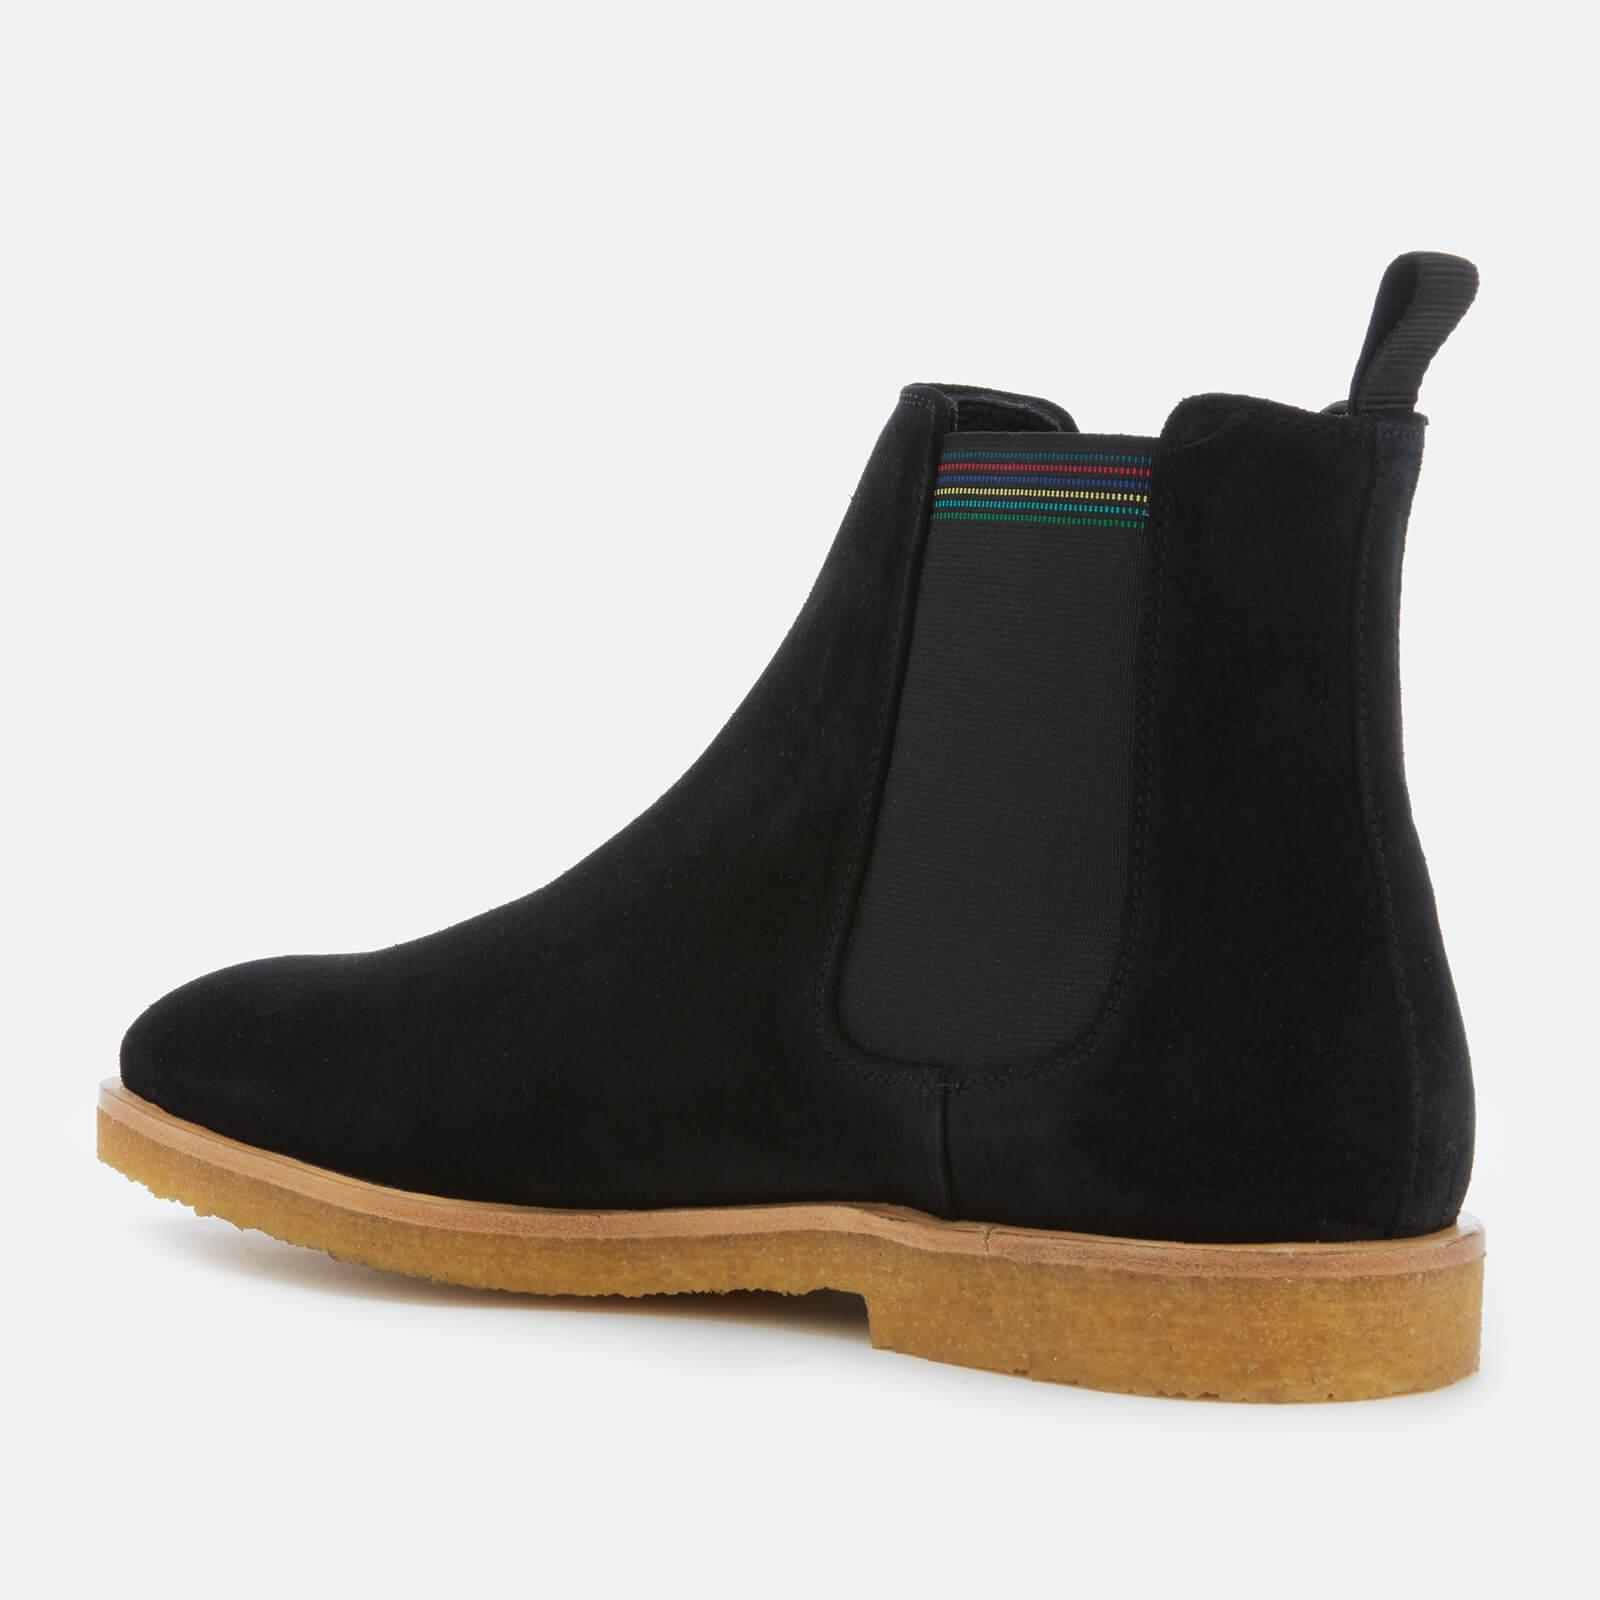 606209b4651 PS by Paul Smith - Black Andy Suede Crepe Sole Chelsea Boots for Men - Lyst.  View fullscreen